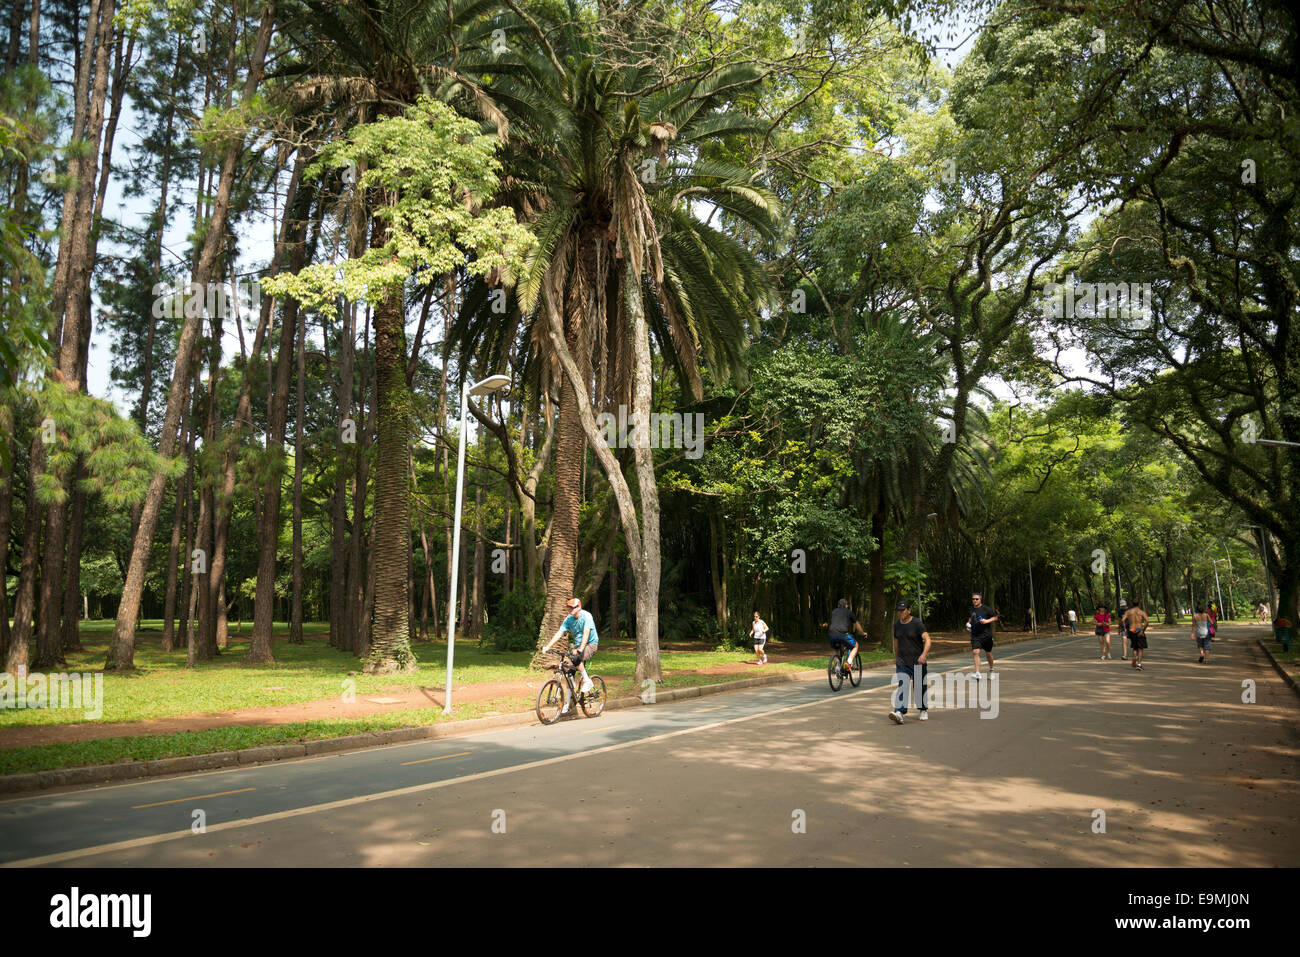 Le parc Ibirapuera, Sao Paulo, Brésil. Photo Stock